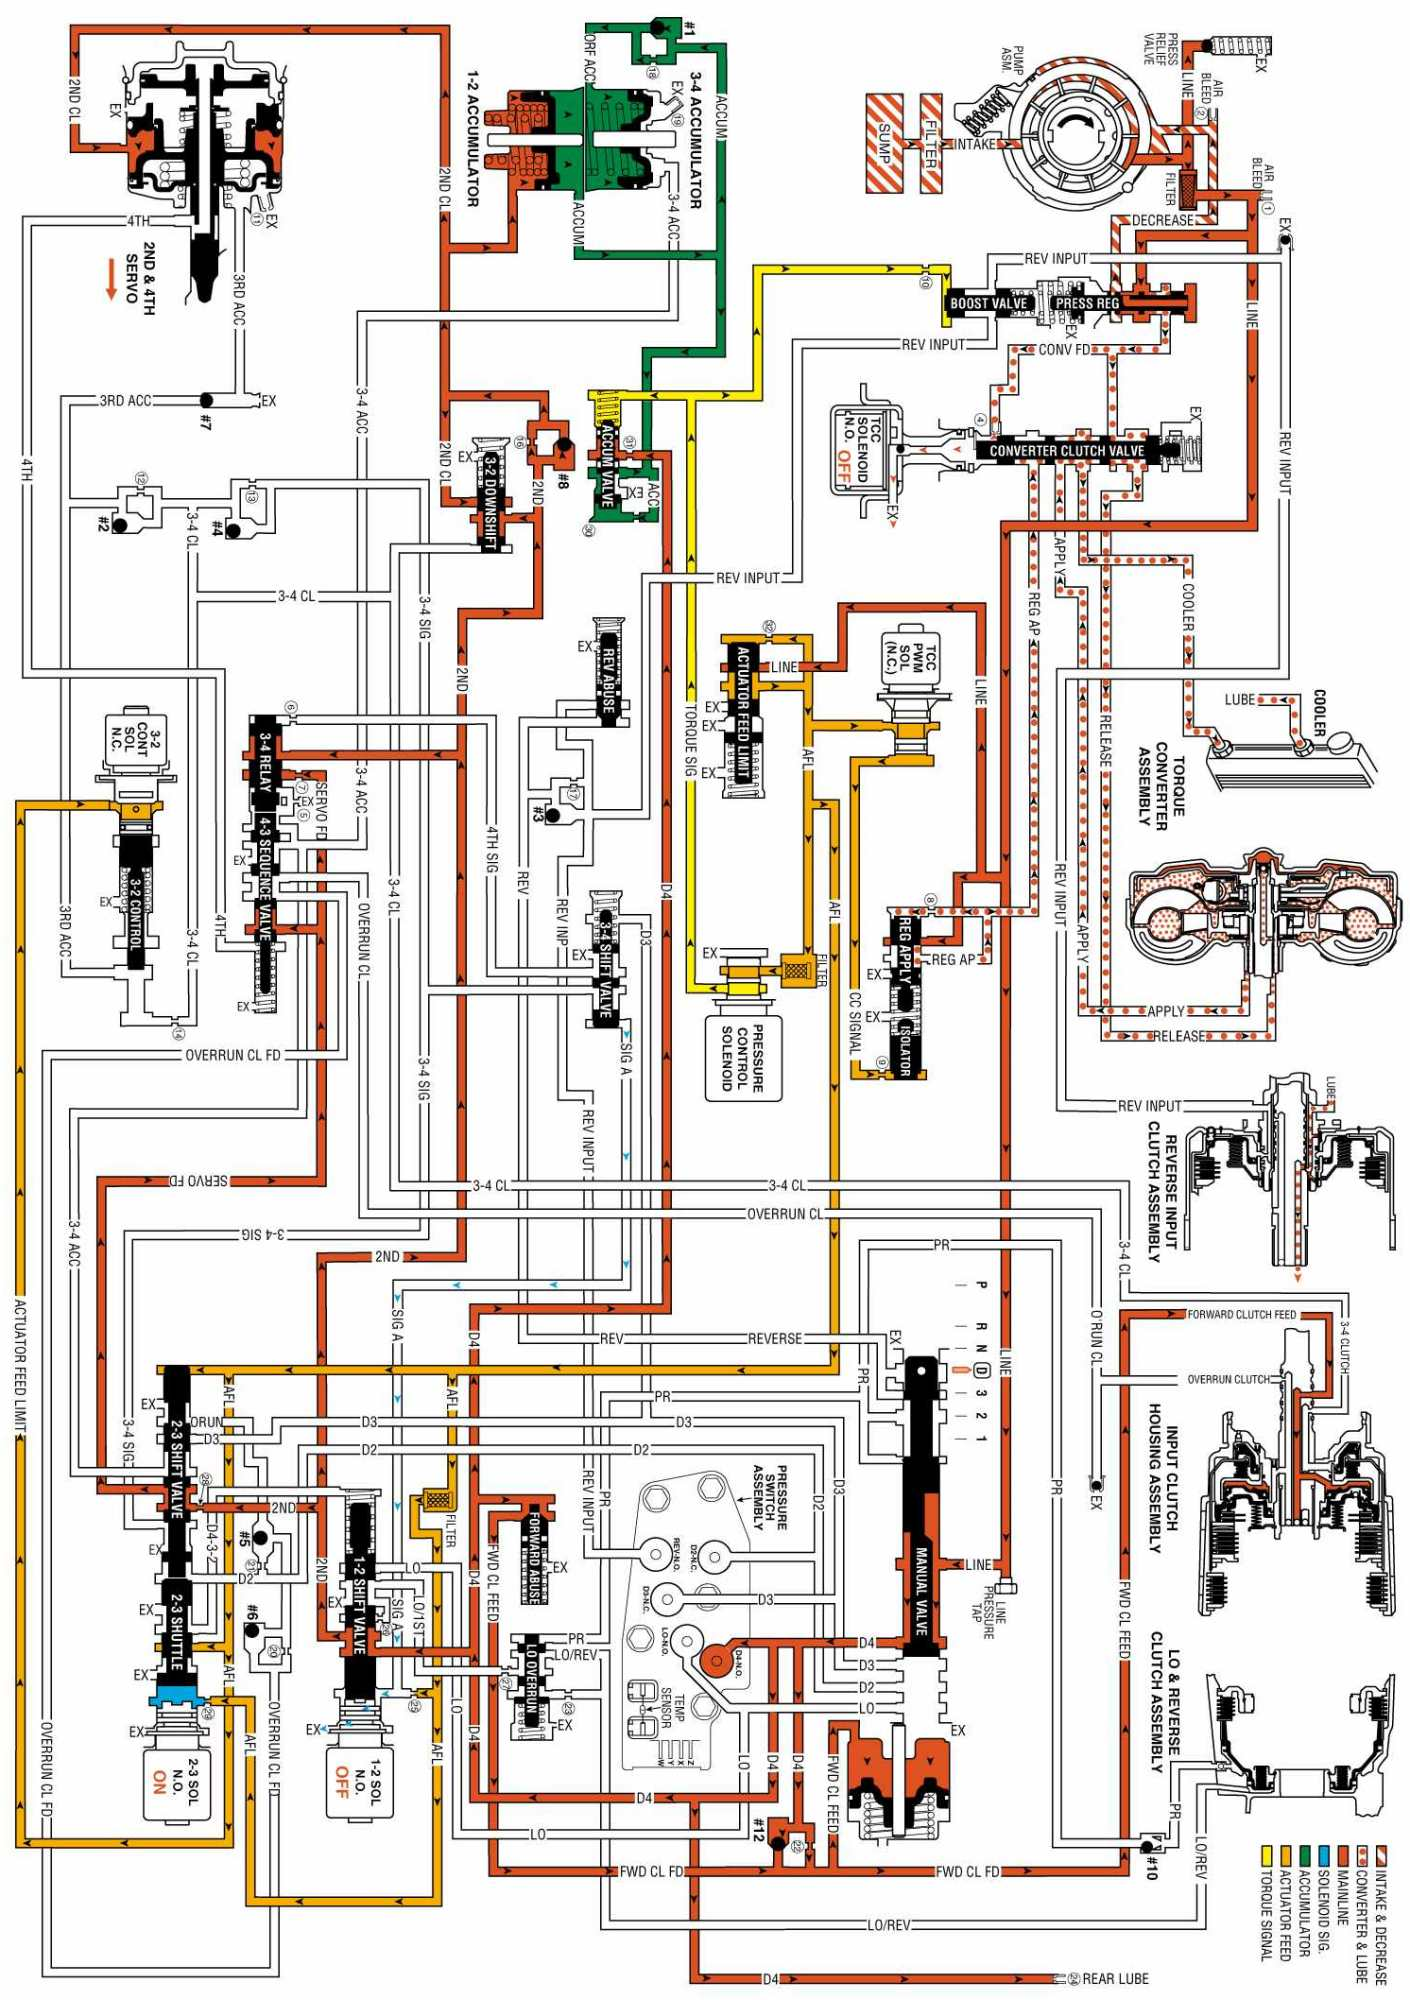 Th400 Transmission Diagram Fluid Wire Data Schema Fibreopticdiagrampng 4l60e No Second Gear Just Slips Dropped Valve Body List Gm Parts